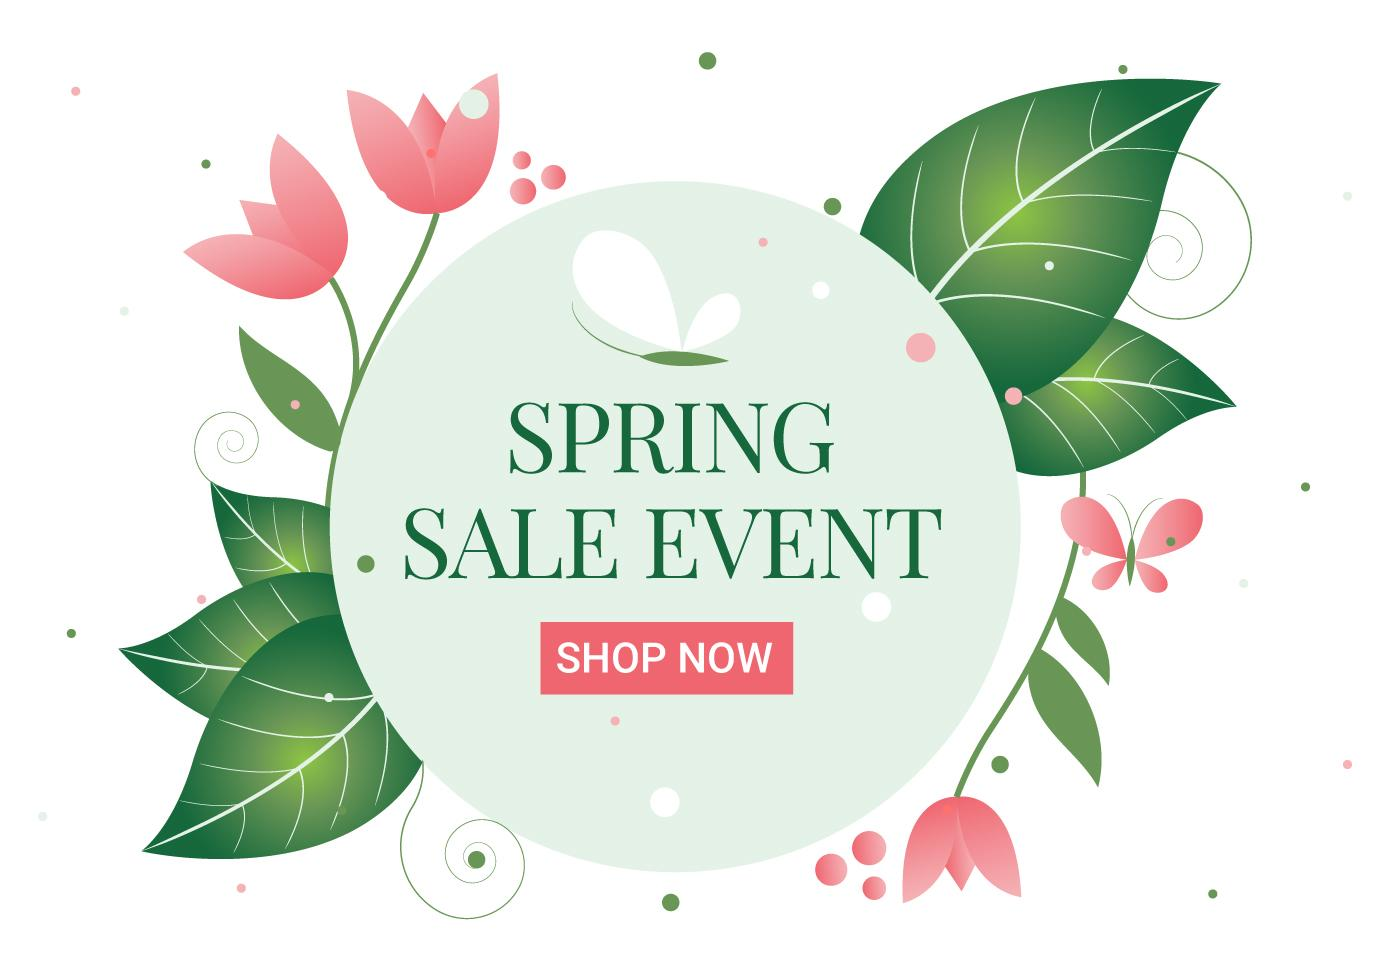 spring sale event